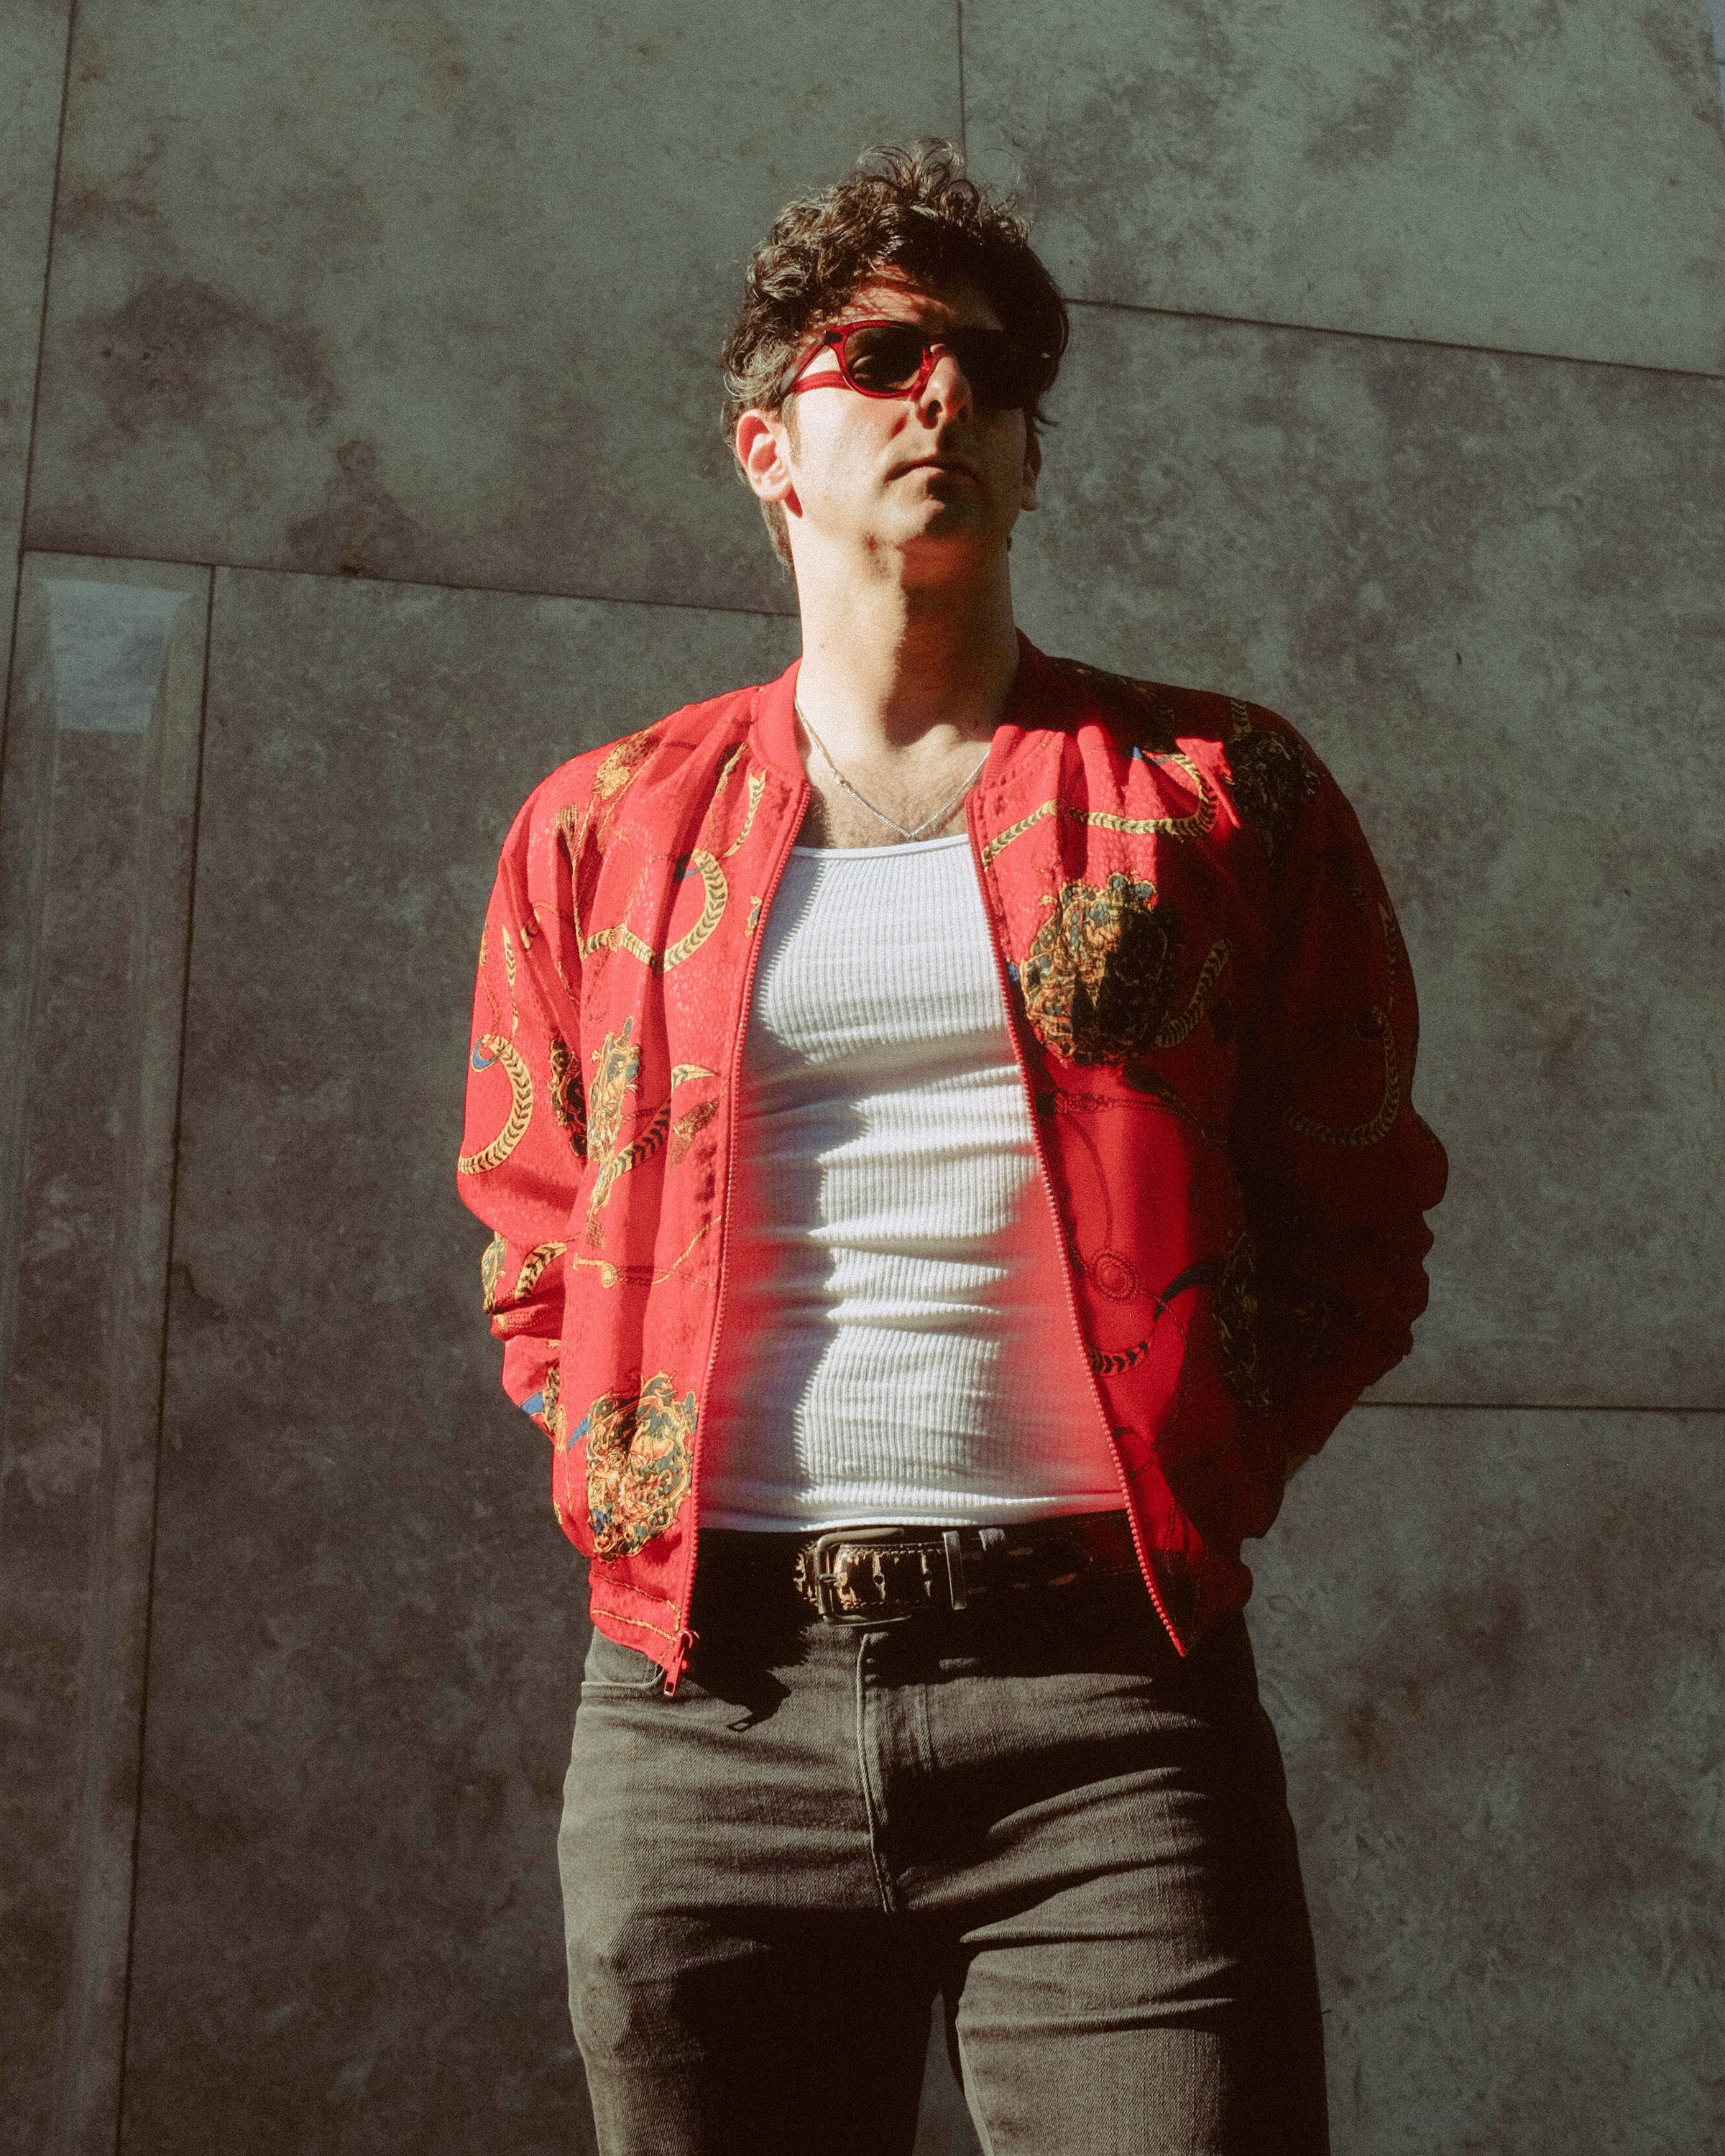 From Barack Obama to Elton John, Philly rockers Low Cut Connie continue to win fans